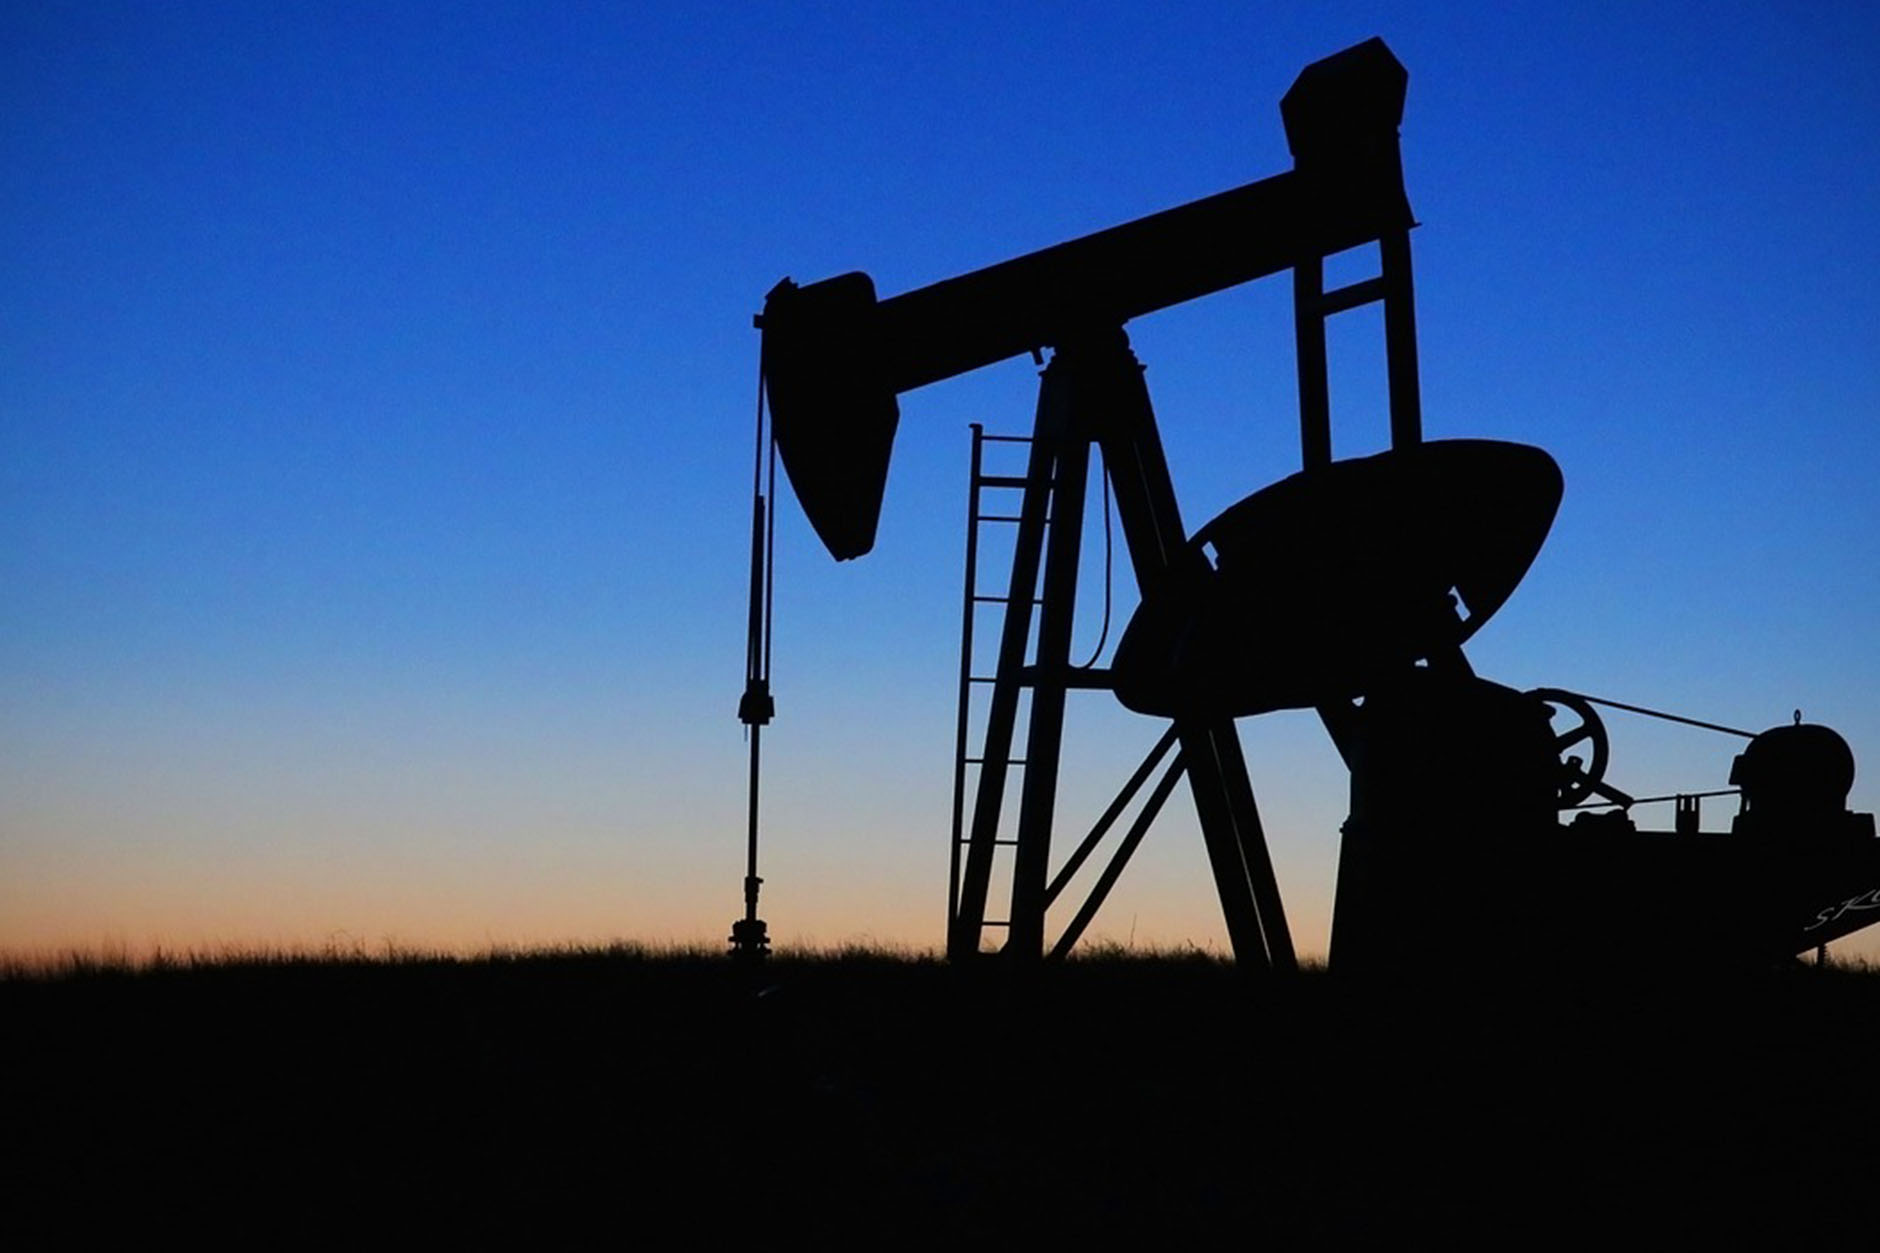 Oil Prices Have Increased 300% in the Past Two Months